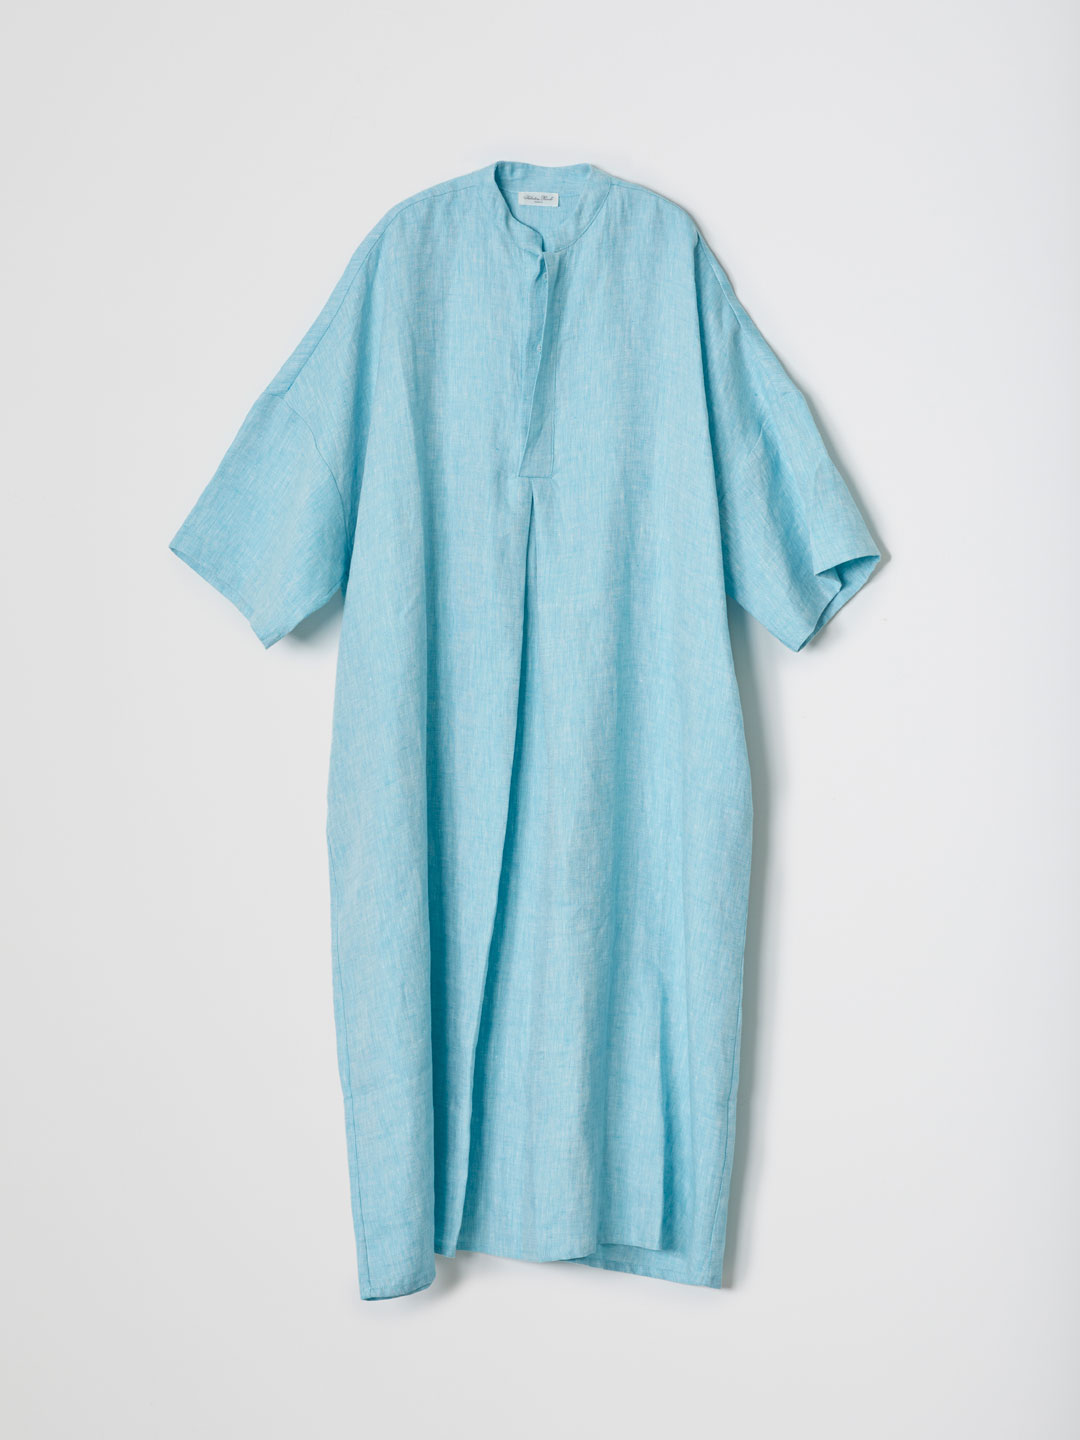 TUNICA GRAZIA Long Shirt - Light Blue